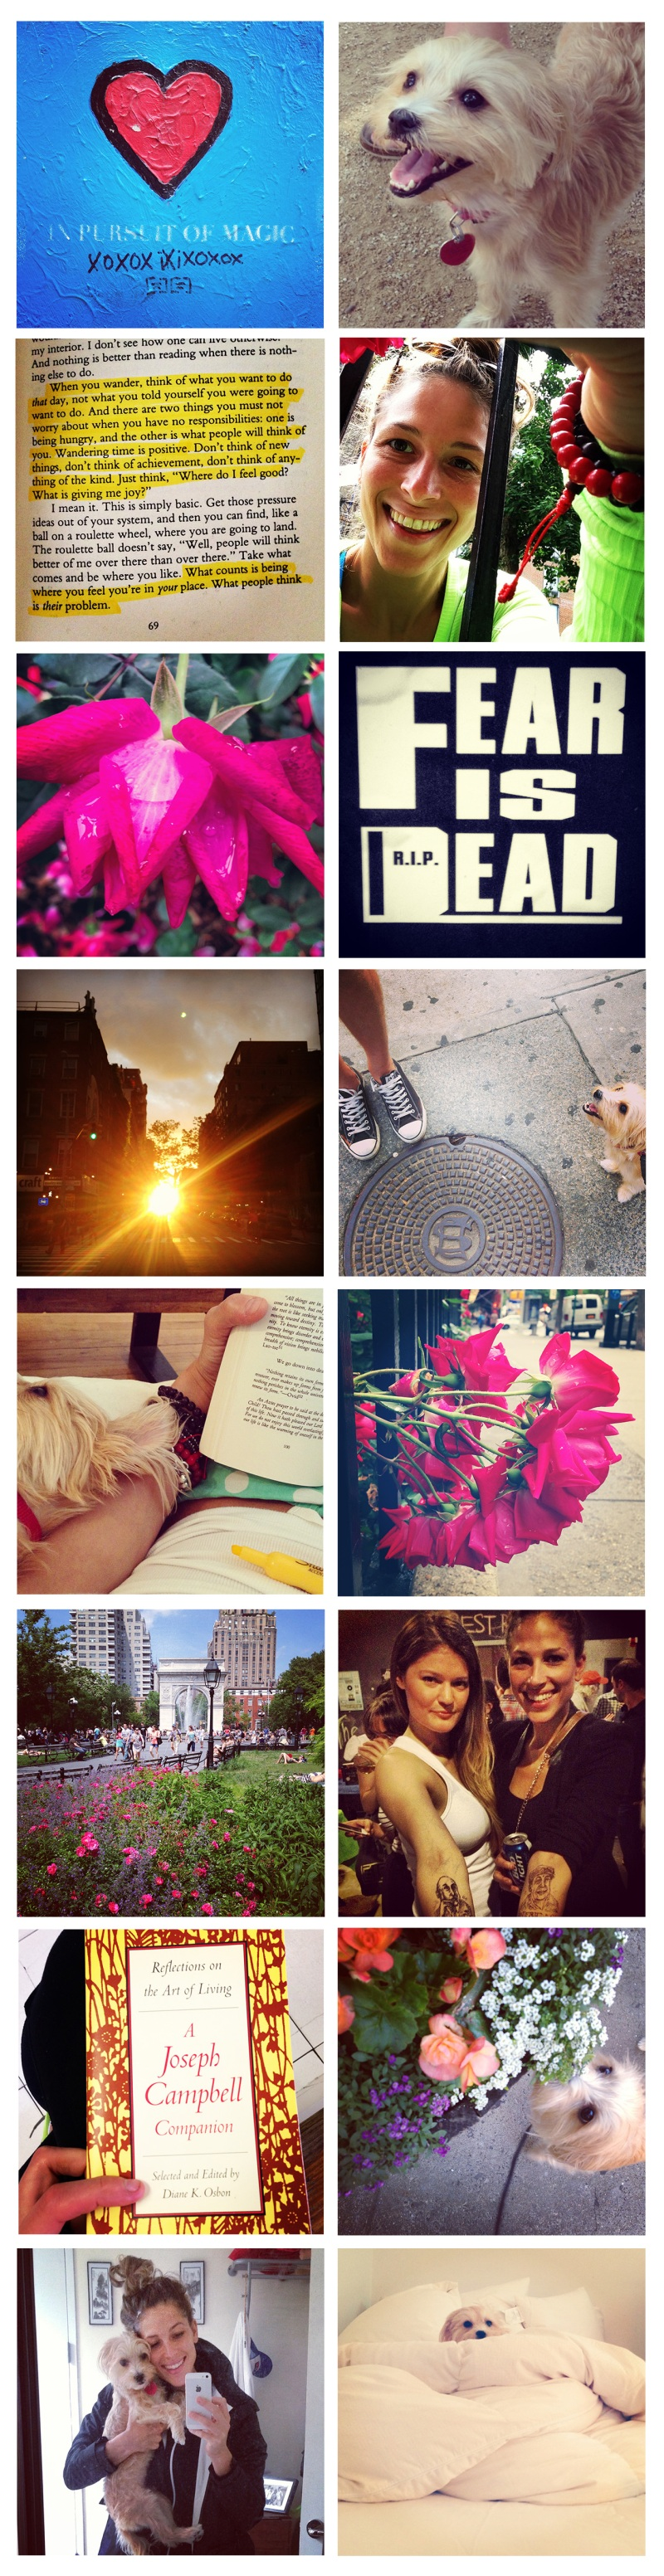 weekend instagrams